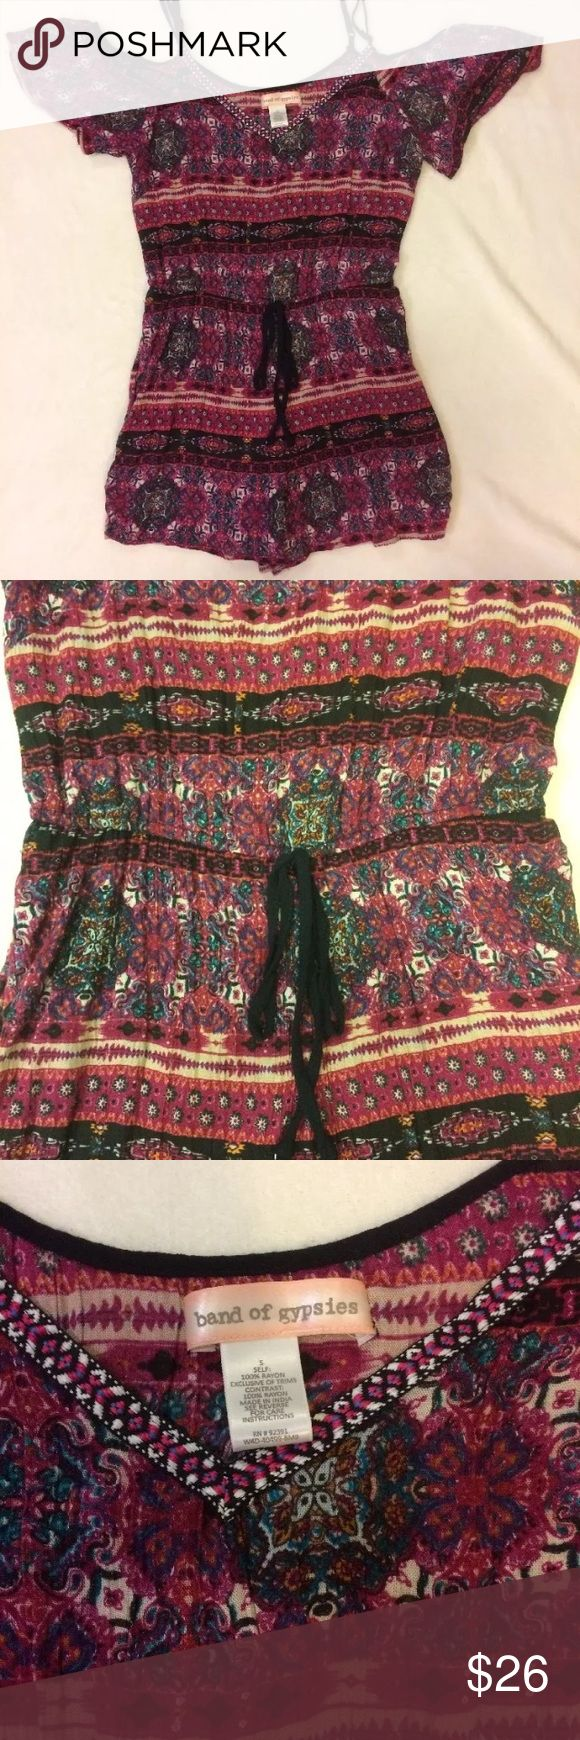 """Band Of Gypsies romper Size small cold shoulder romper ties at waist adjustable straps 100% rayon measurements are approximately 12"""" across waist but stretches 15"""" across under arms 29"""" length from top of shoulder strap to bottom hem new without tags Band of Gypsies Other"""